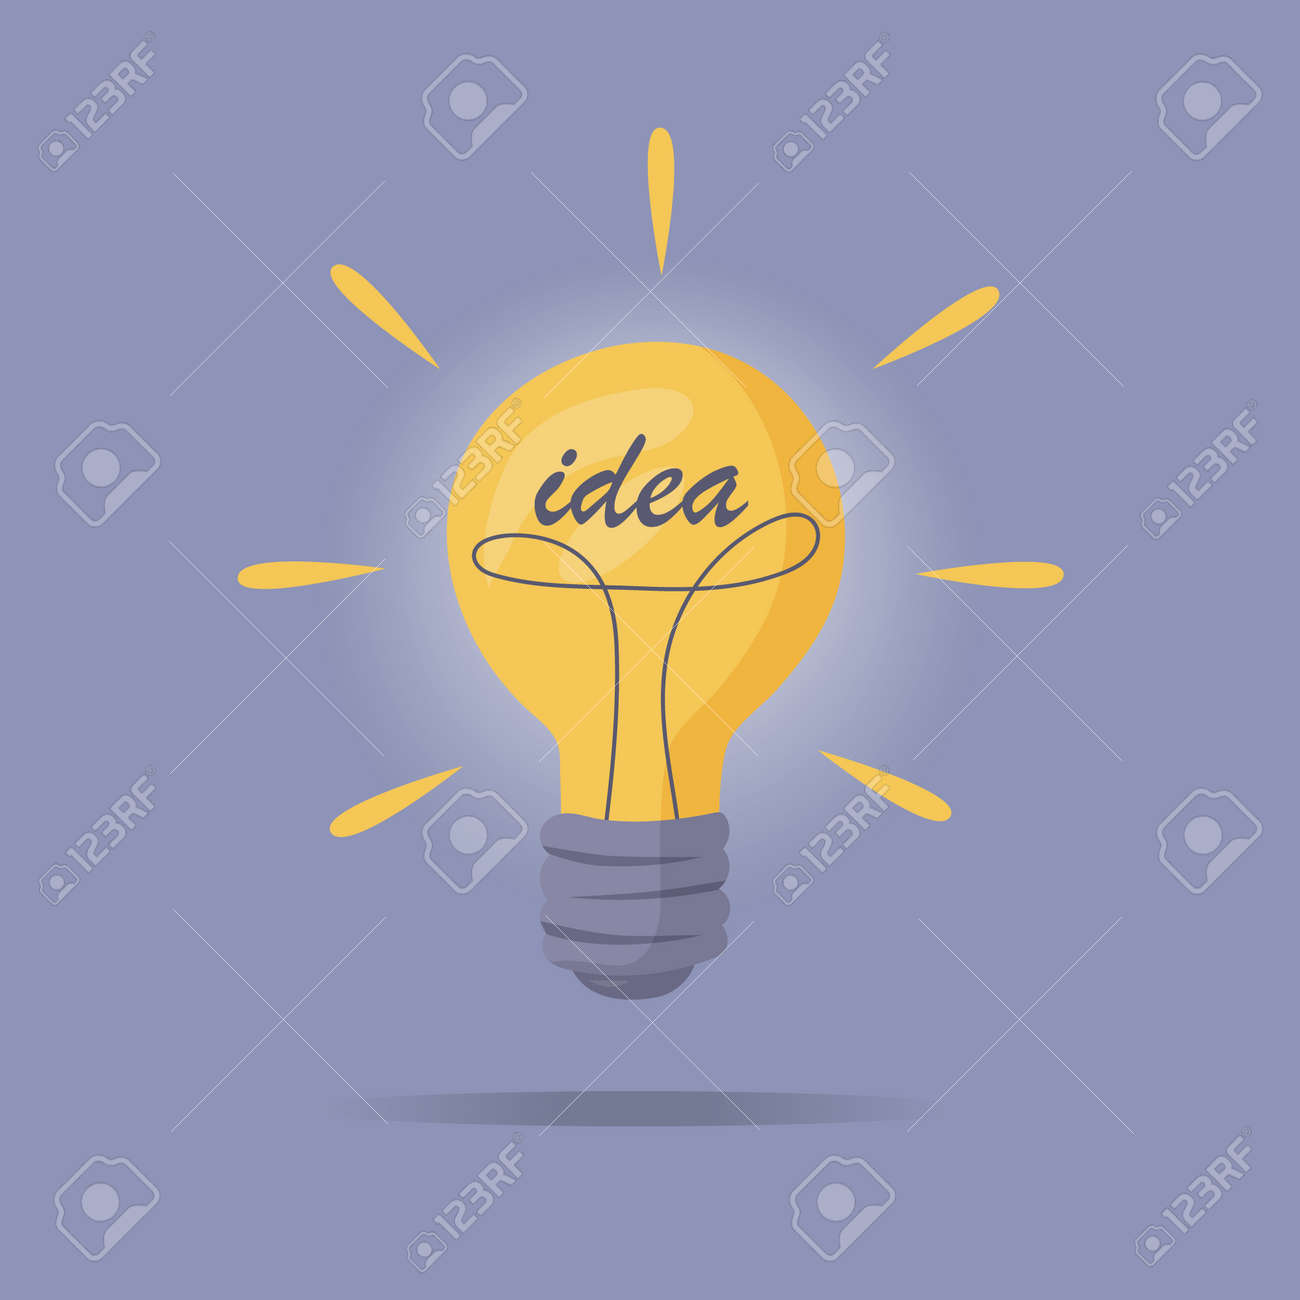 The light bulb is on. Vector illustration of incandescent lamp. The concept of creative and unique new idea, innovation. - 158087007